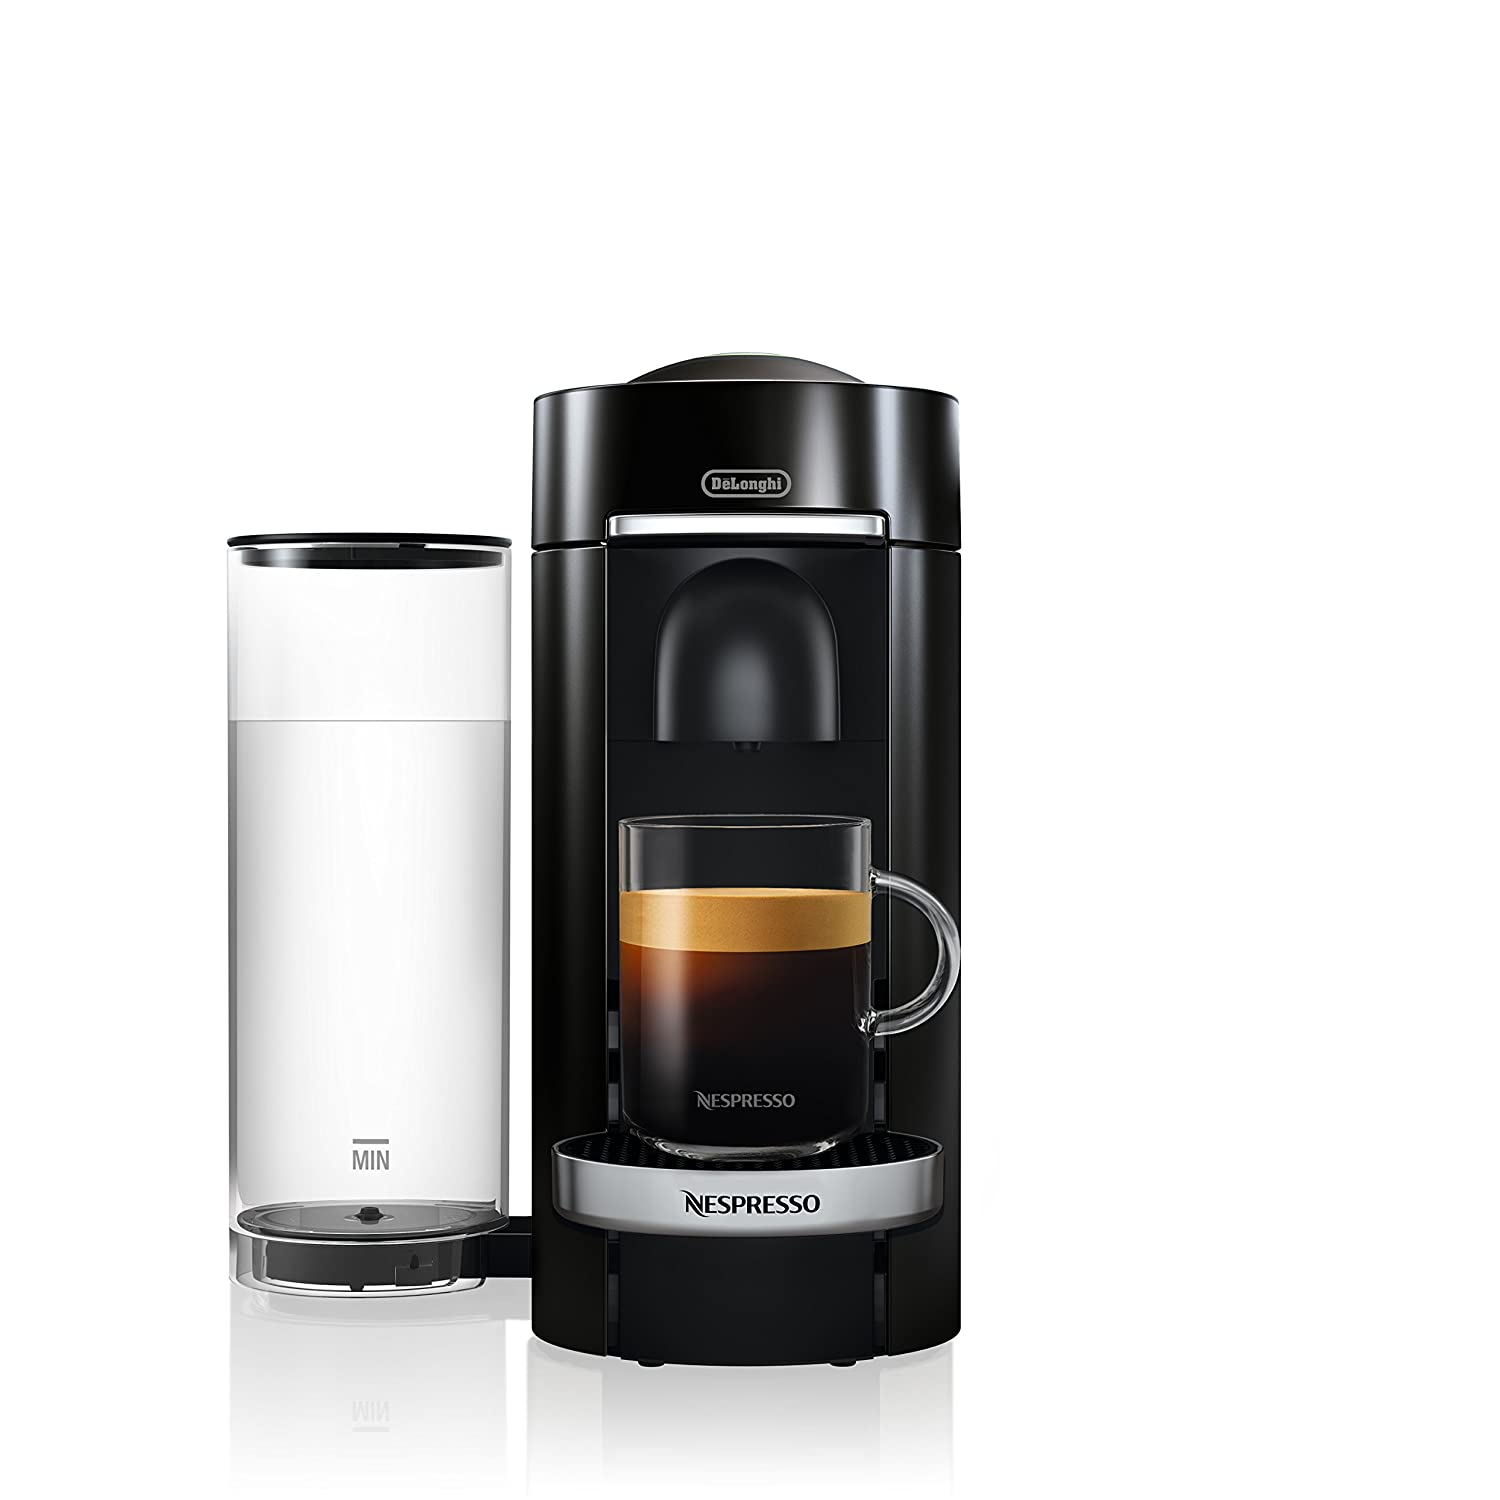 Nespresso ENV155B VertuoPlus Deluxe Coffee and Espresso Maker by De'Longhi, Black